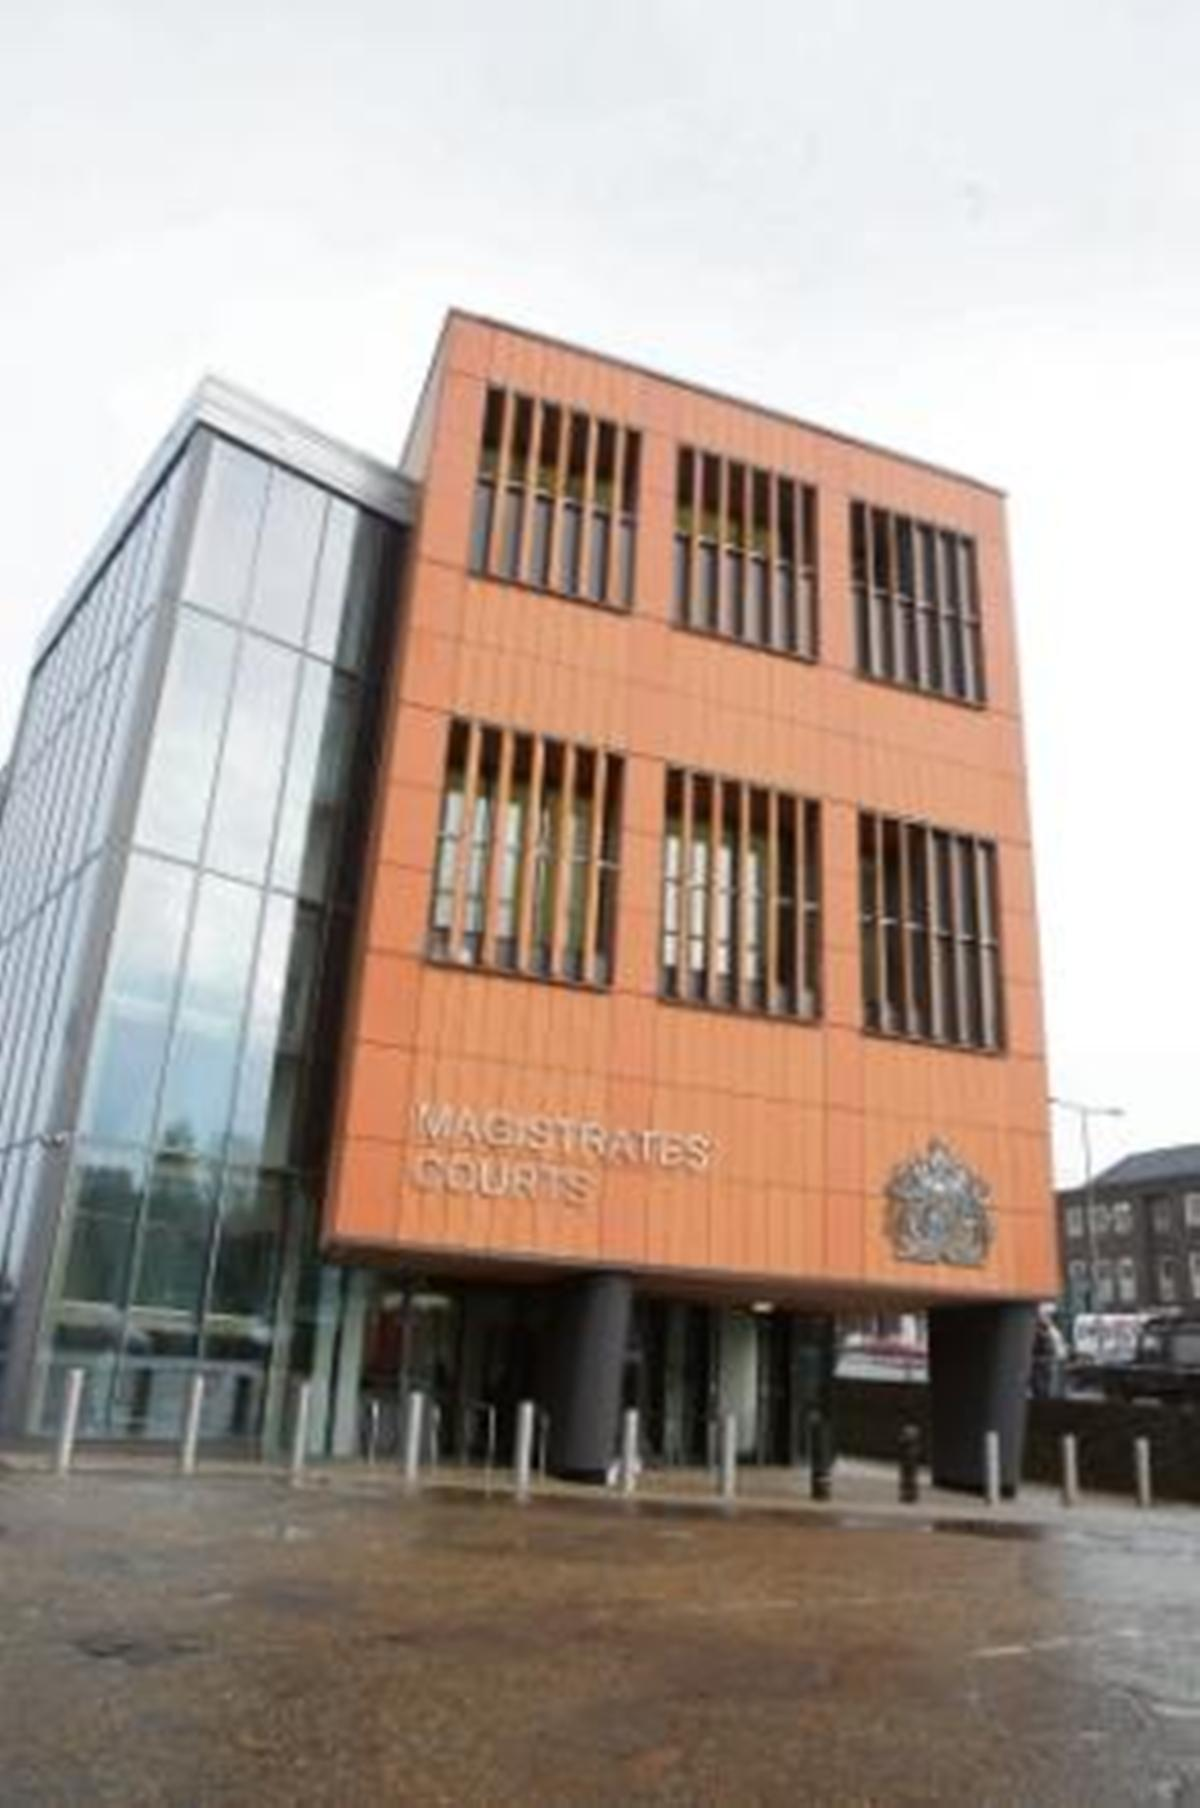 Abused - Defendant told to put up with racist abuse